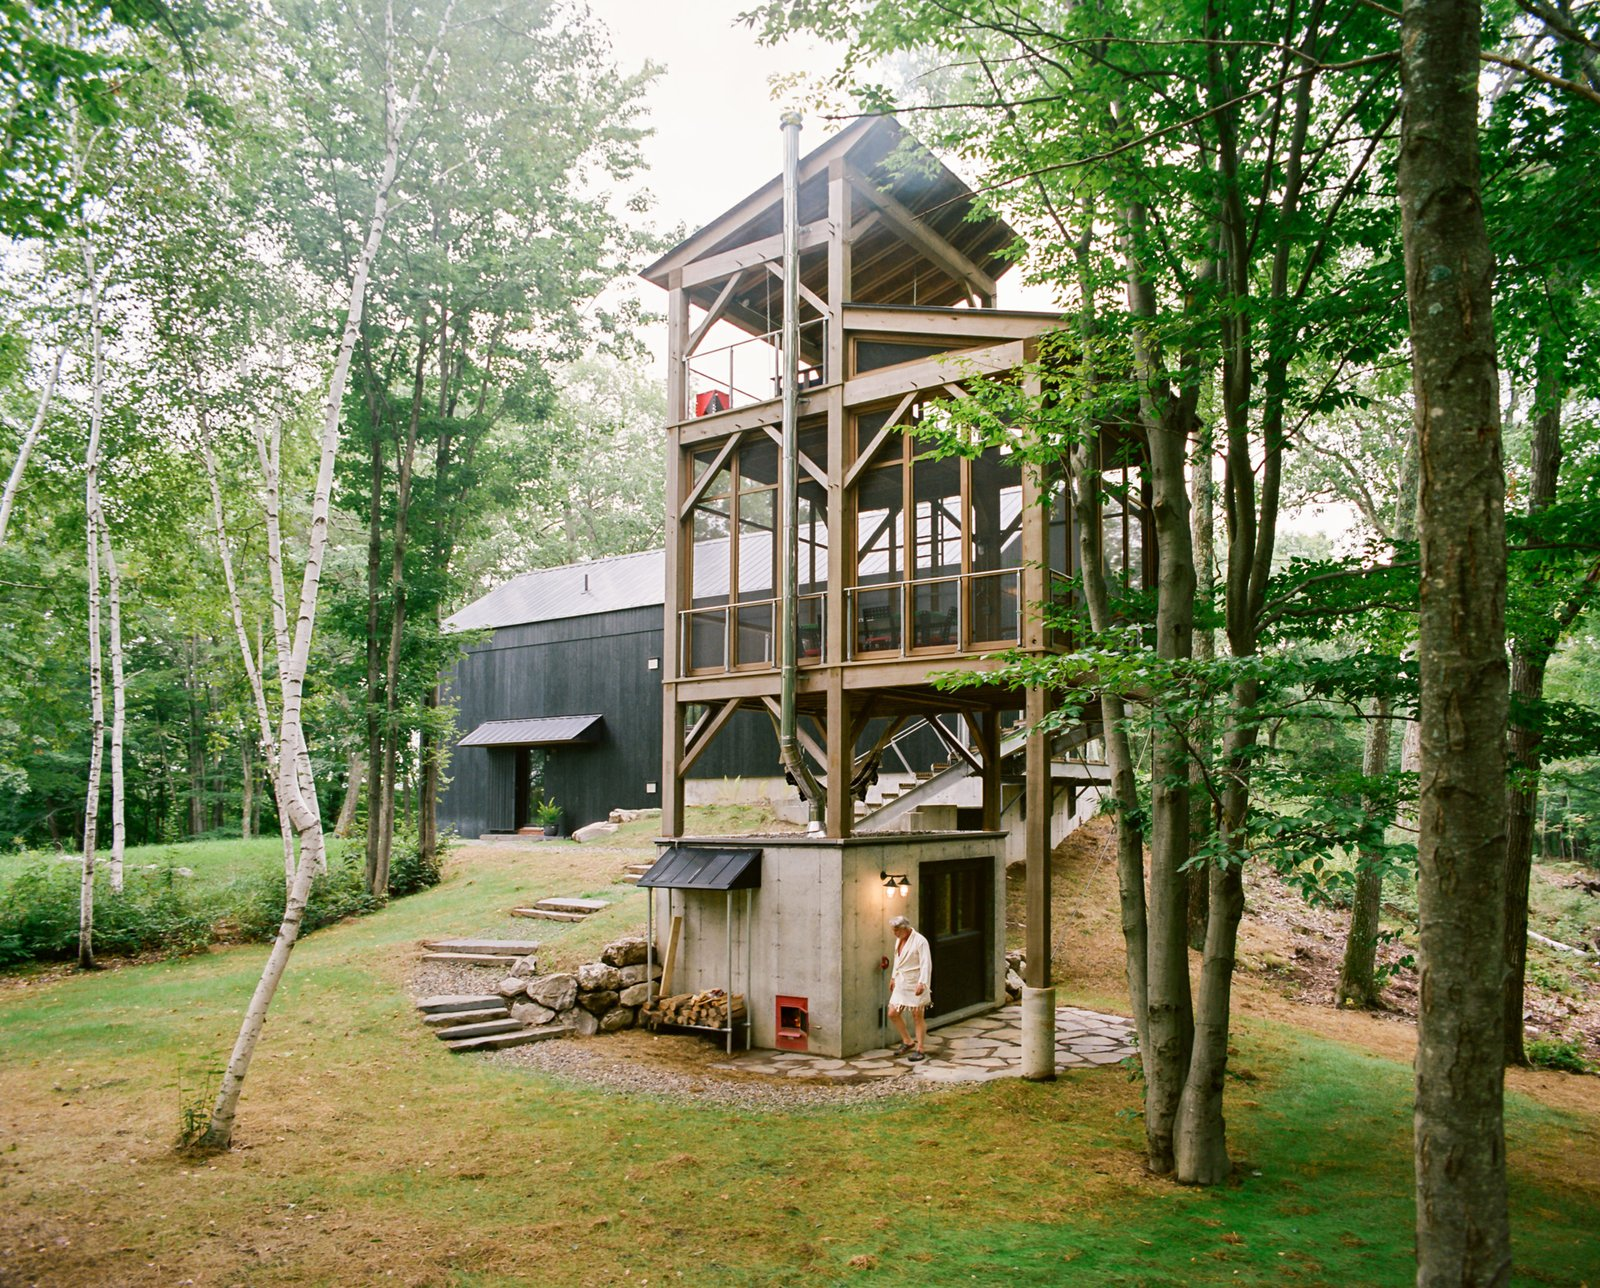 Connected to the main house by a narrow bridge, a three-story cedar tower with a sauna at its base recalls a tree house. The screened-in second level includes a table and chairs for enjoying an outdoor meal, while a swing on the tower's top level provides a perch to take in the surrounding birch trees.